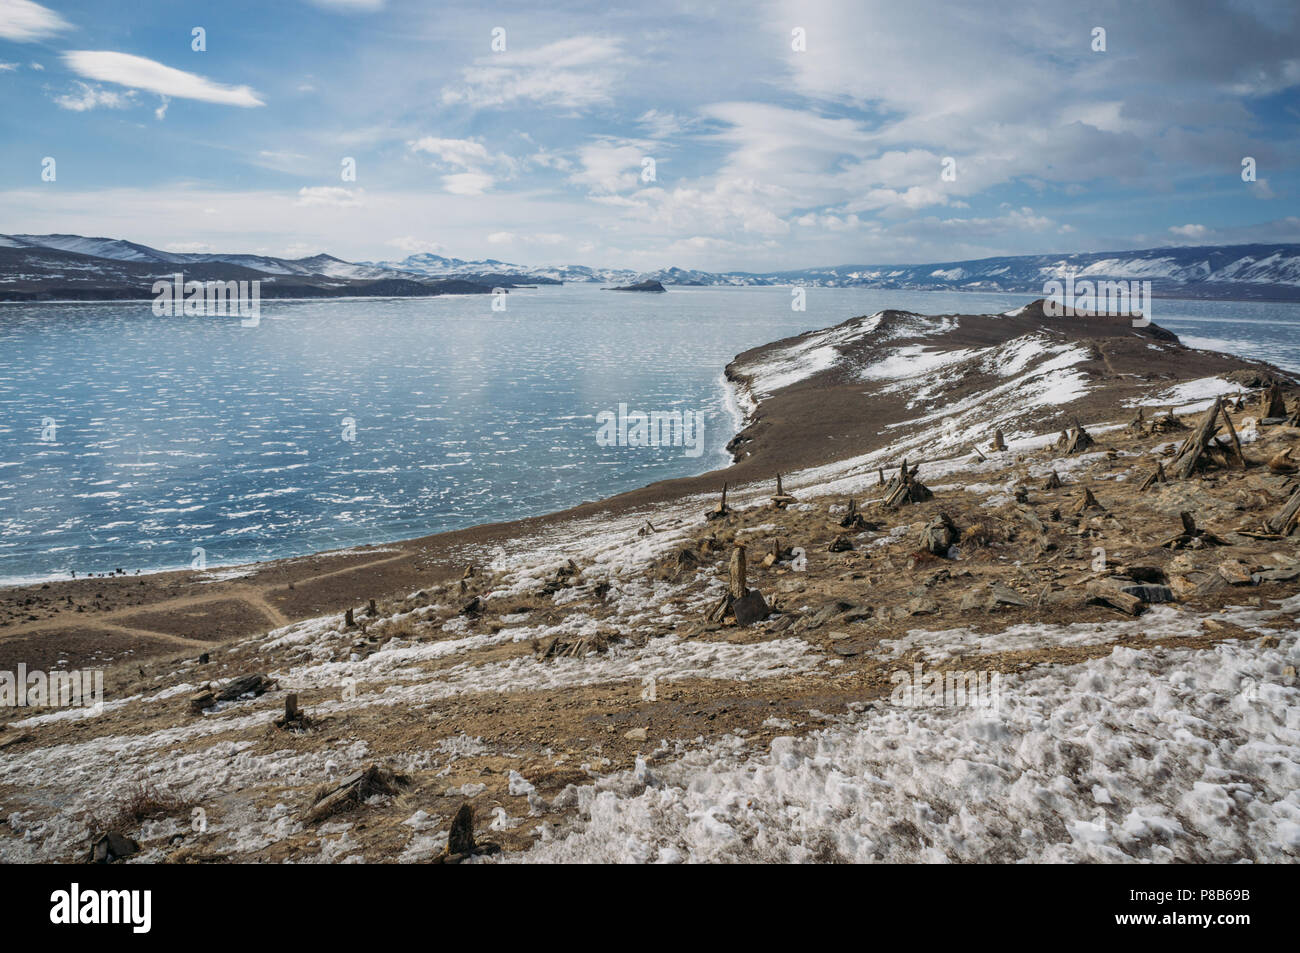 view of sandy mountain lake shore against water and hills on